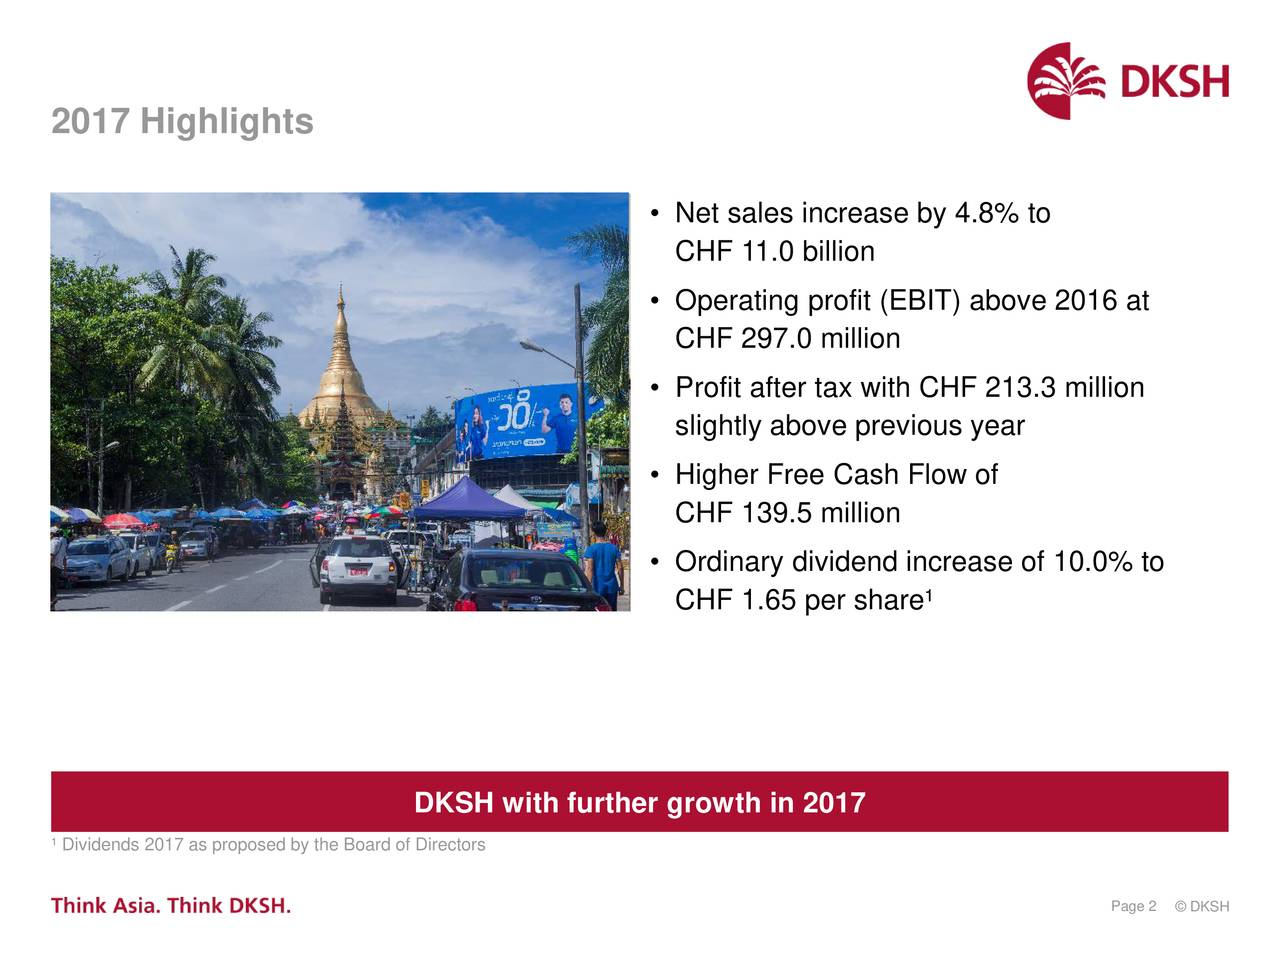 • Net sales increase by 4.8% to CHF 11.0 billion • Operating profit (EBIT) above 2016 at CHF 297.0 million • Profit after tax with CHF 213.3 million slightly above previous year • Higher Free Cash Flow of CHF 139.5 million • Ordinary dividend increase of 10.0% to CHF 1.65 per share¹ DKSH with further growth in 2017 ¹ Dividends 2017 as proposed by the Board of Directors Page 2© DKSH